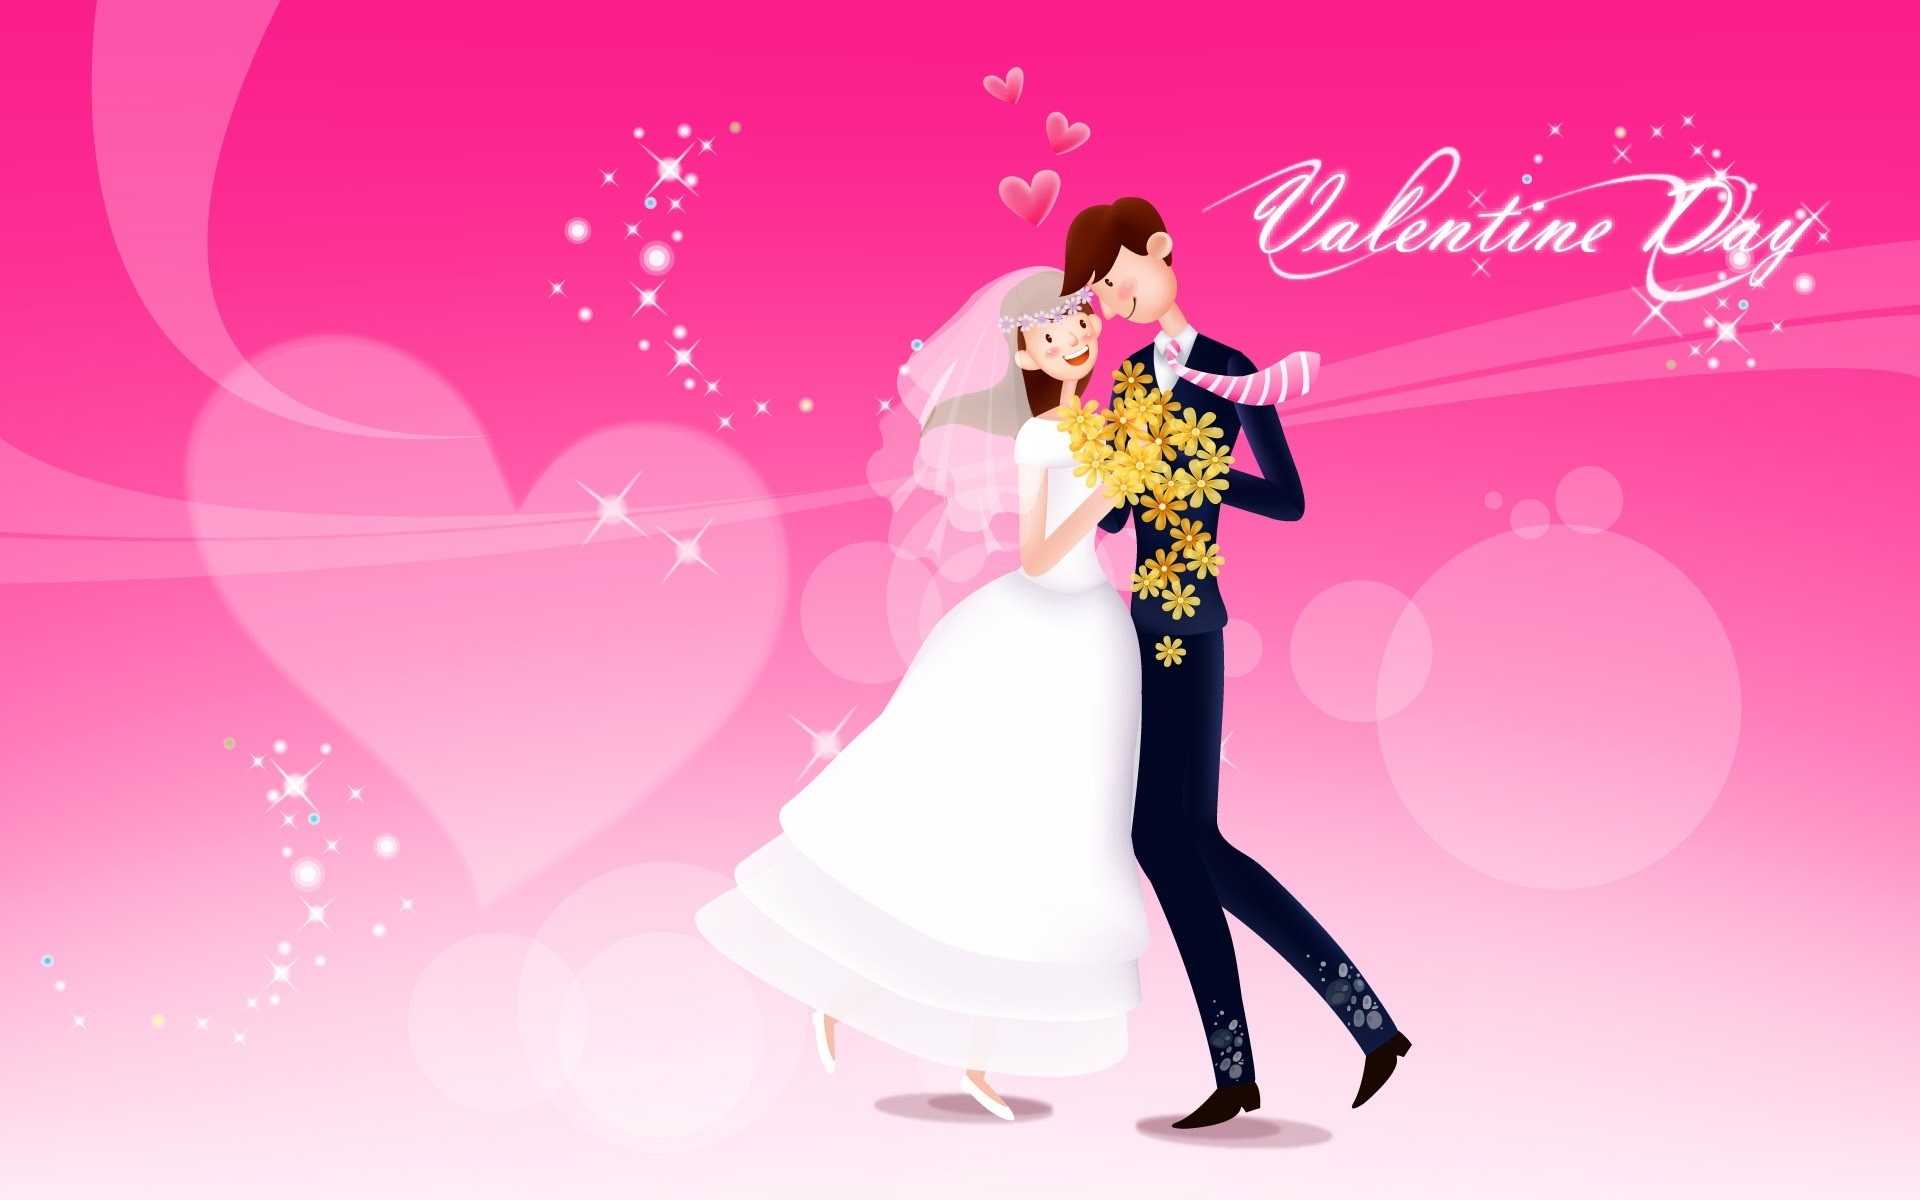 disney valentines day wallpaper (69+ images)